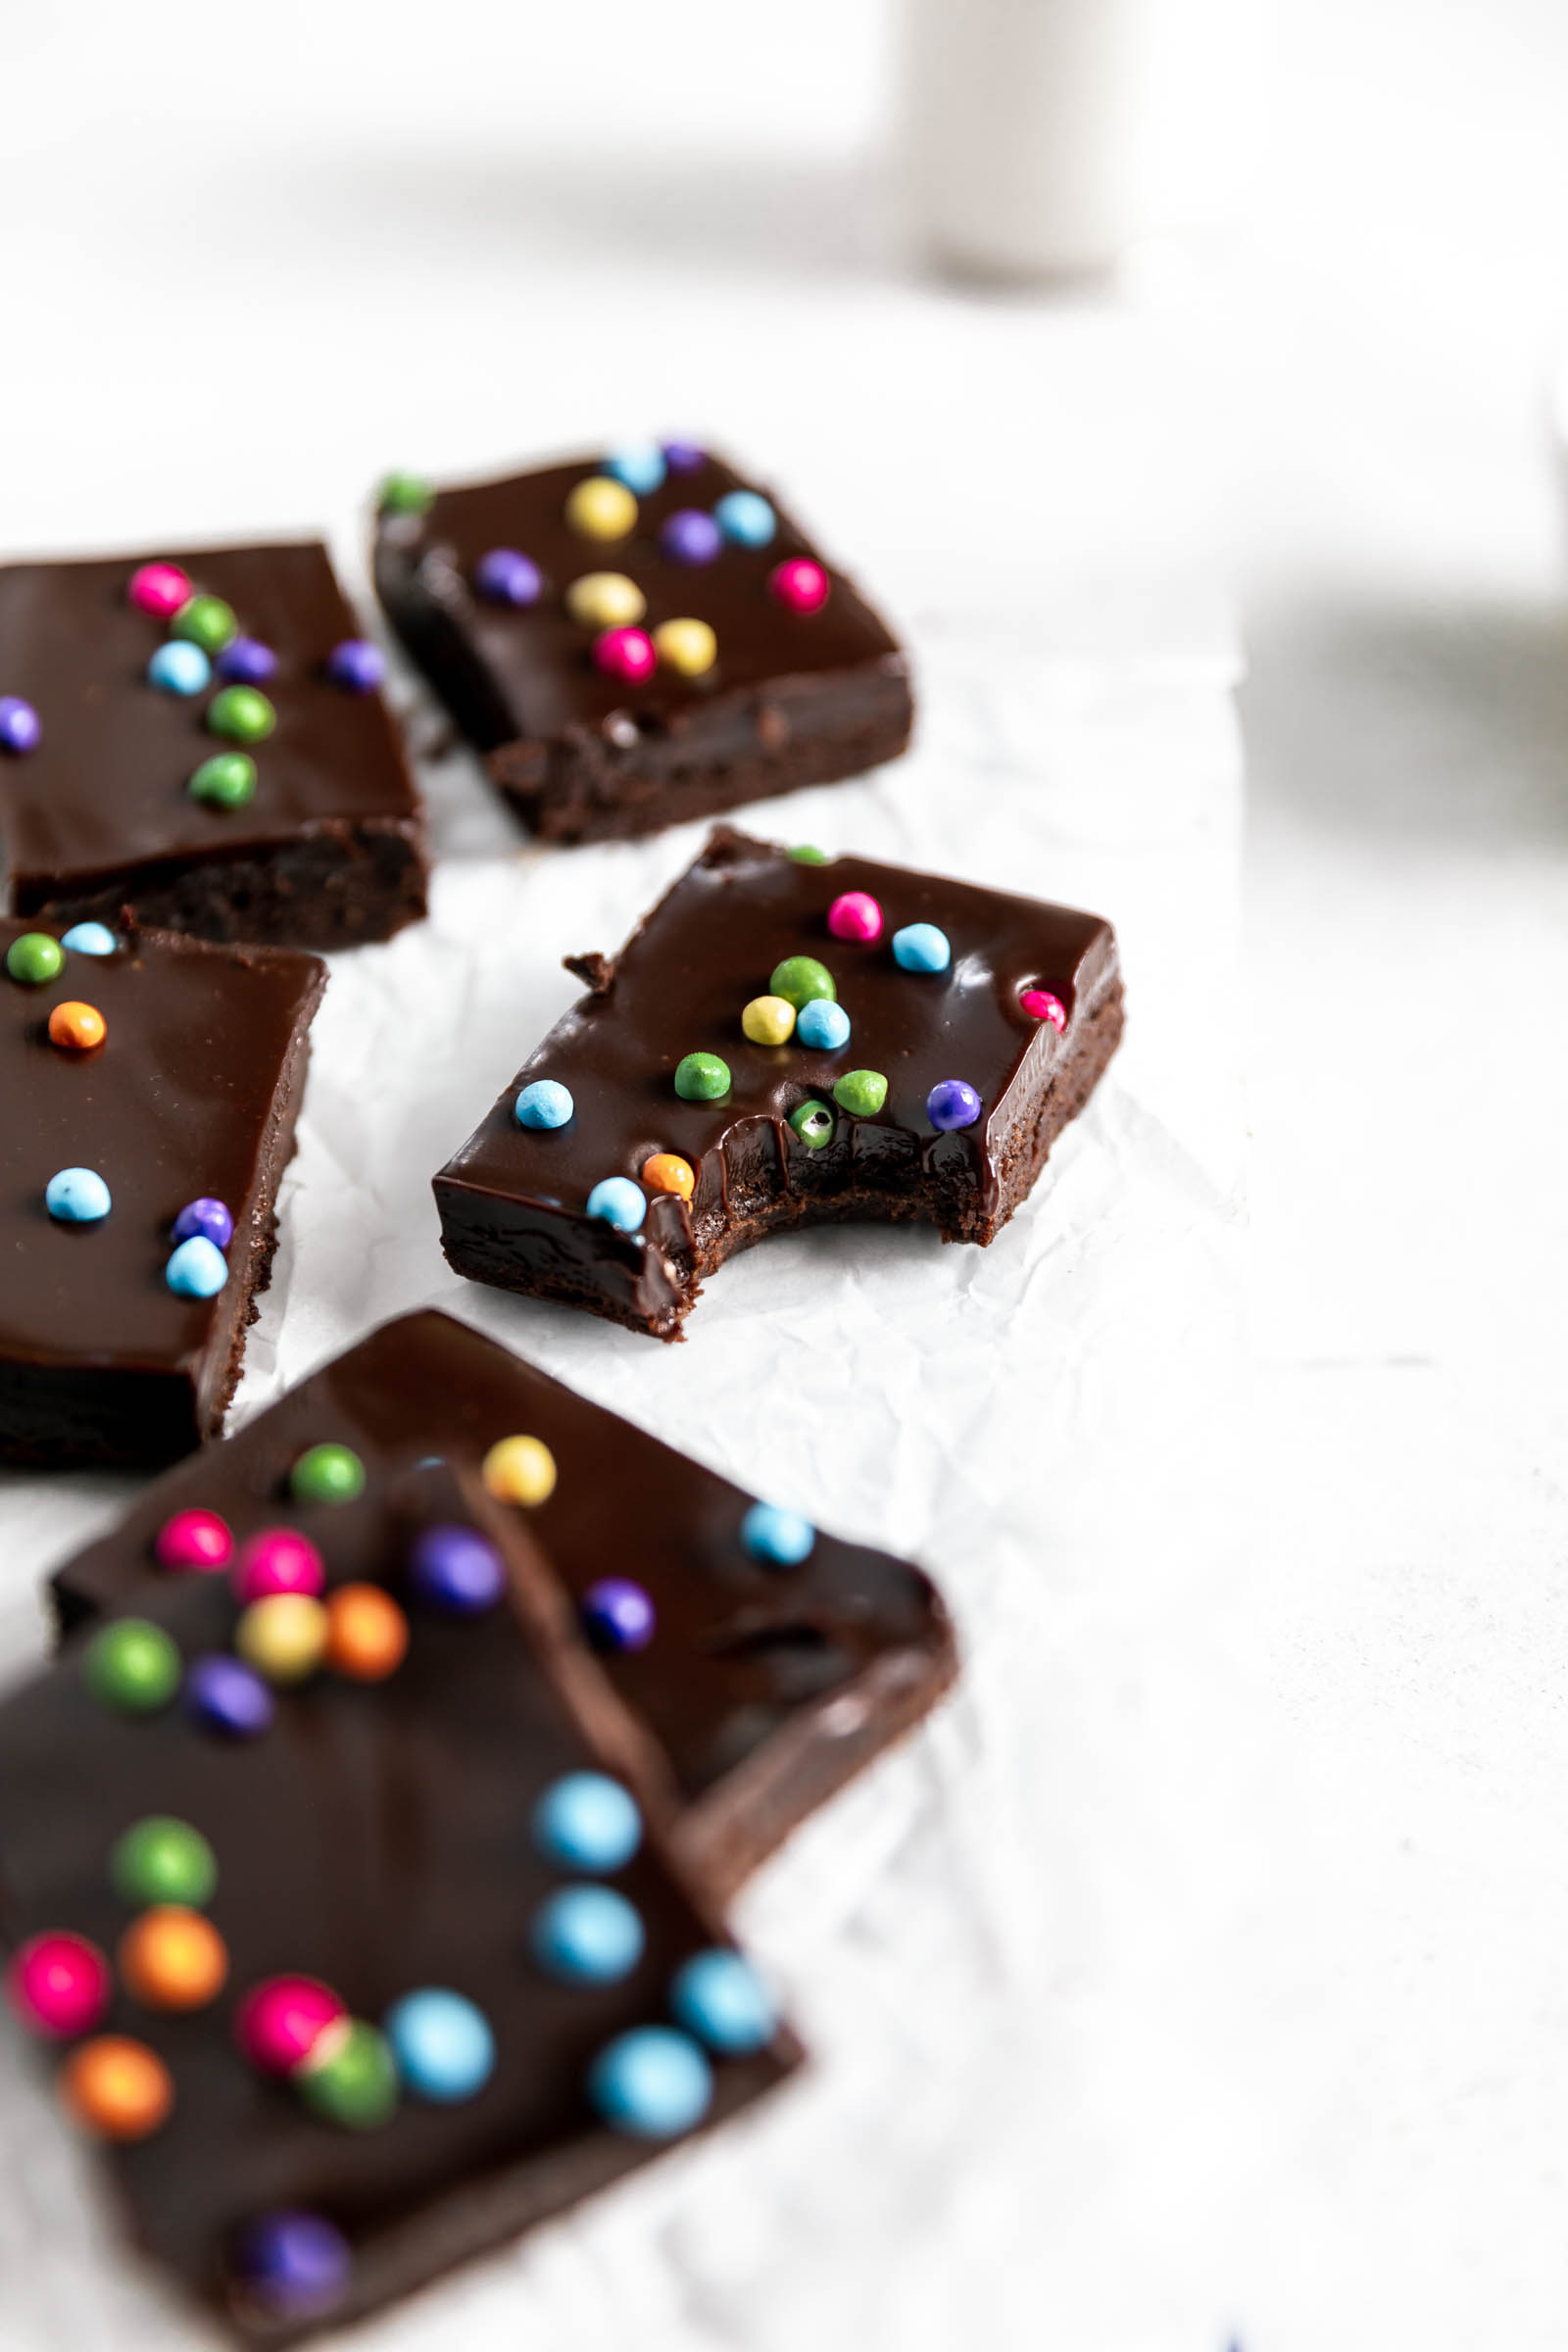 fudgy brownies with candy chocolate sprinkles and a bite taken out of it